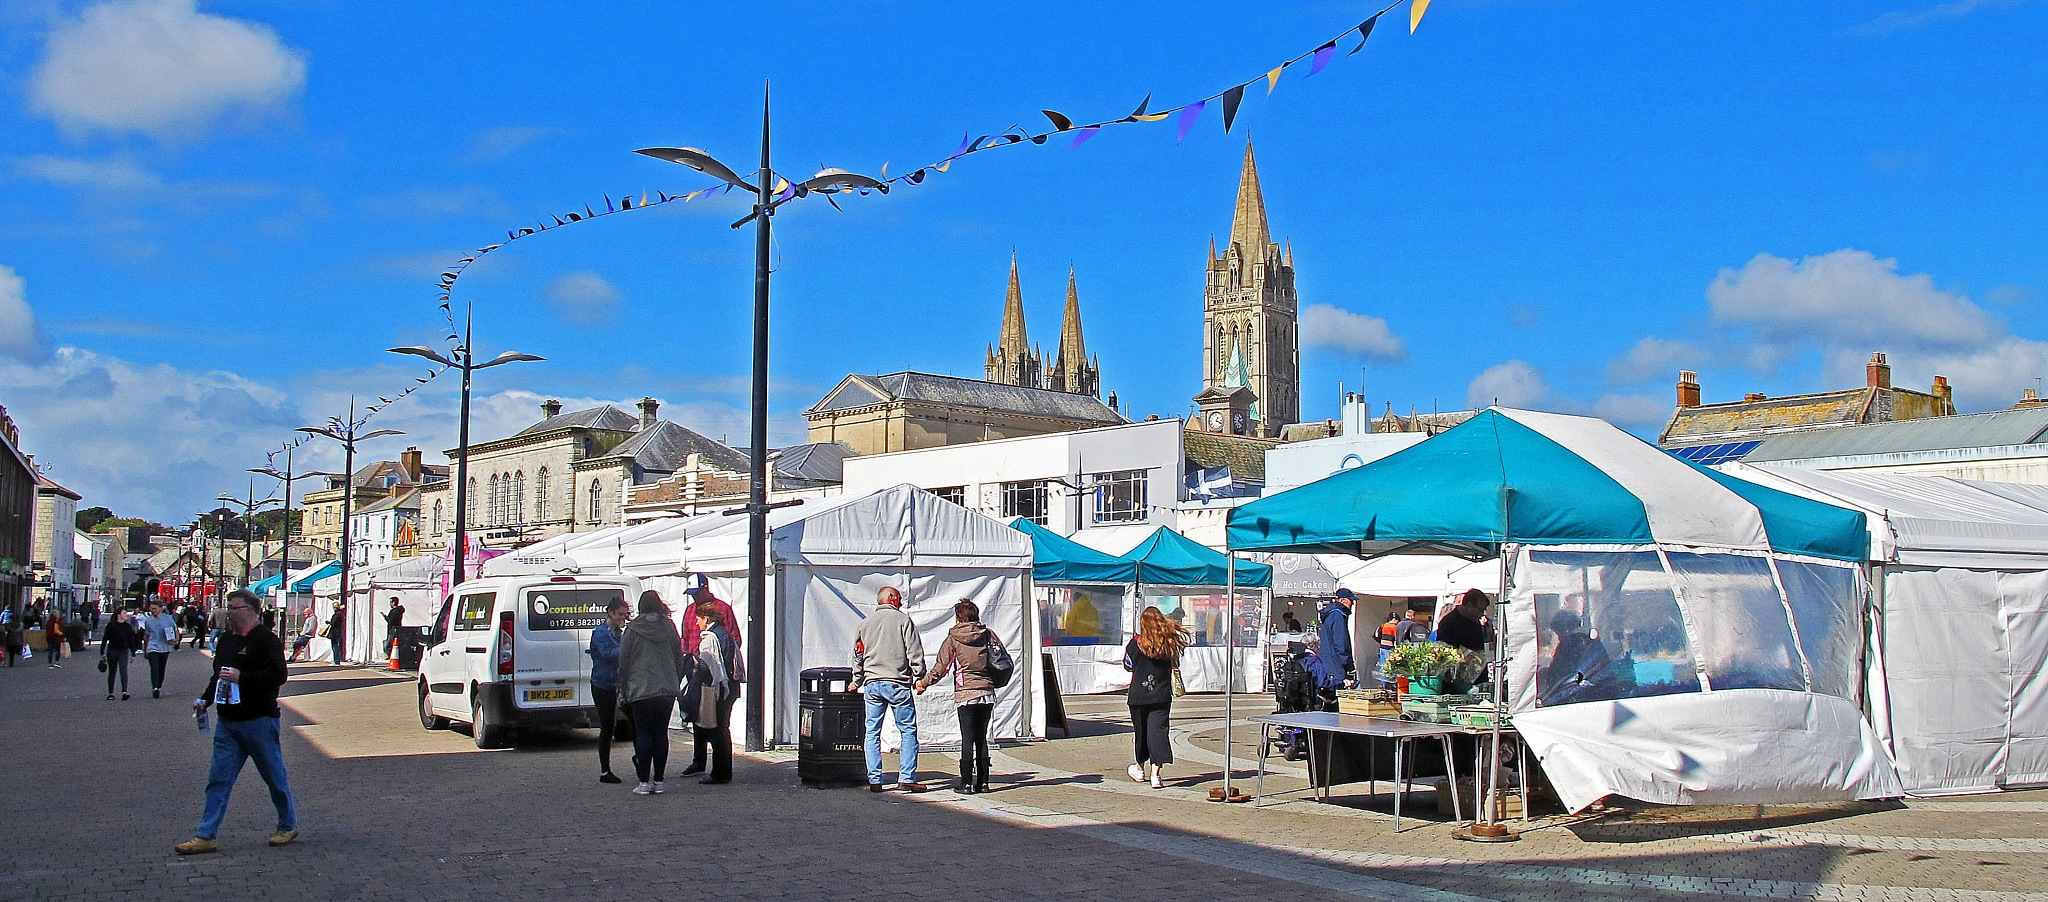 Truro and the Cathedral, 3. by jamez